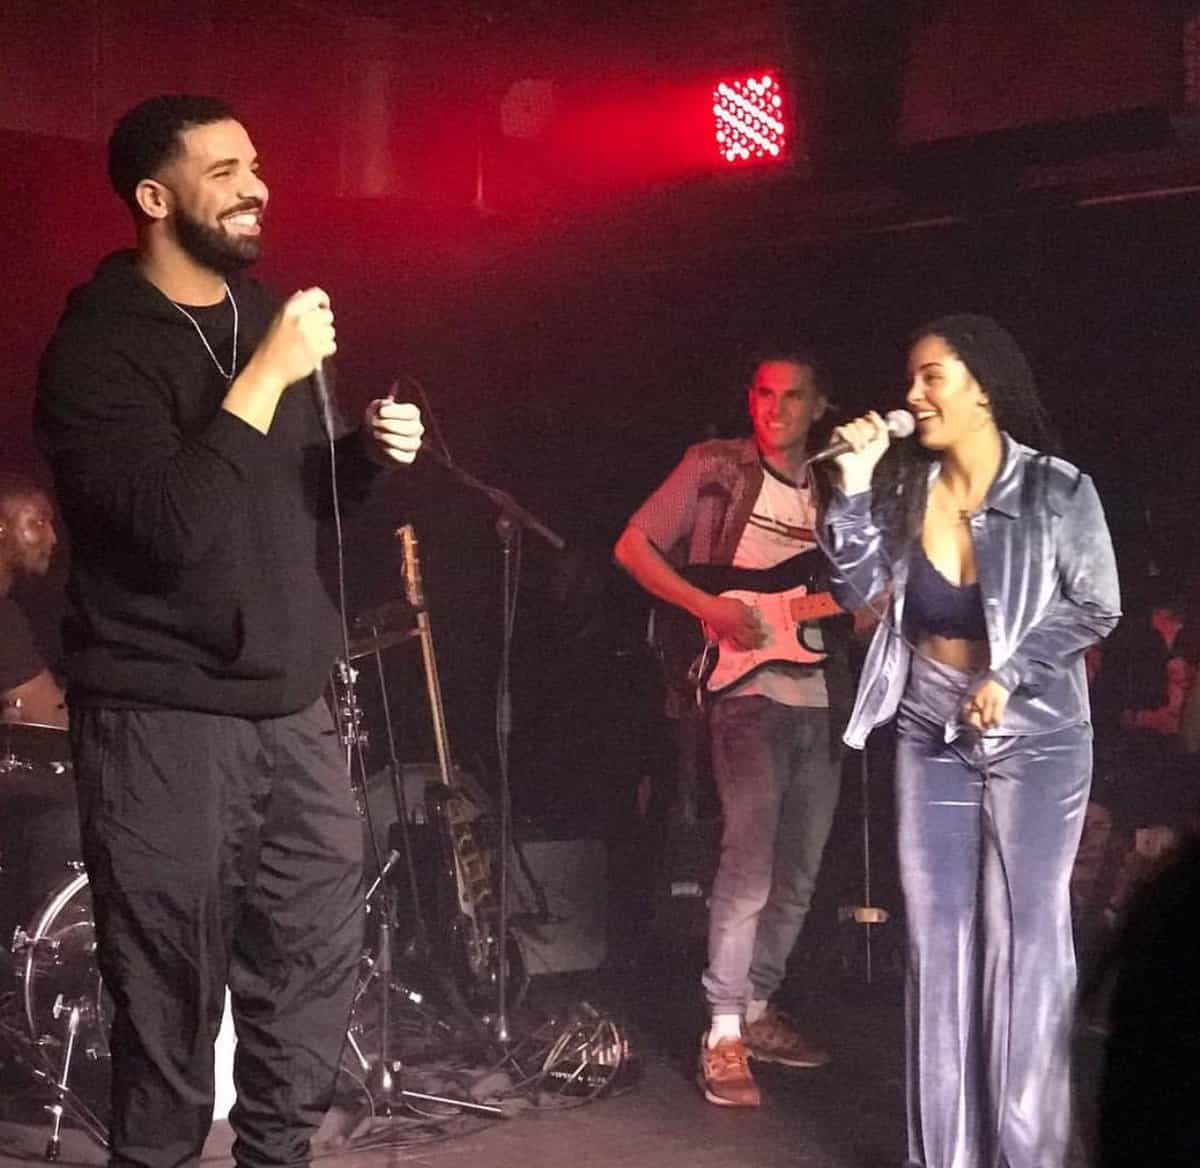 A New Drake & Jorja Smith's Song I Could Never Surfaces Online